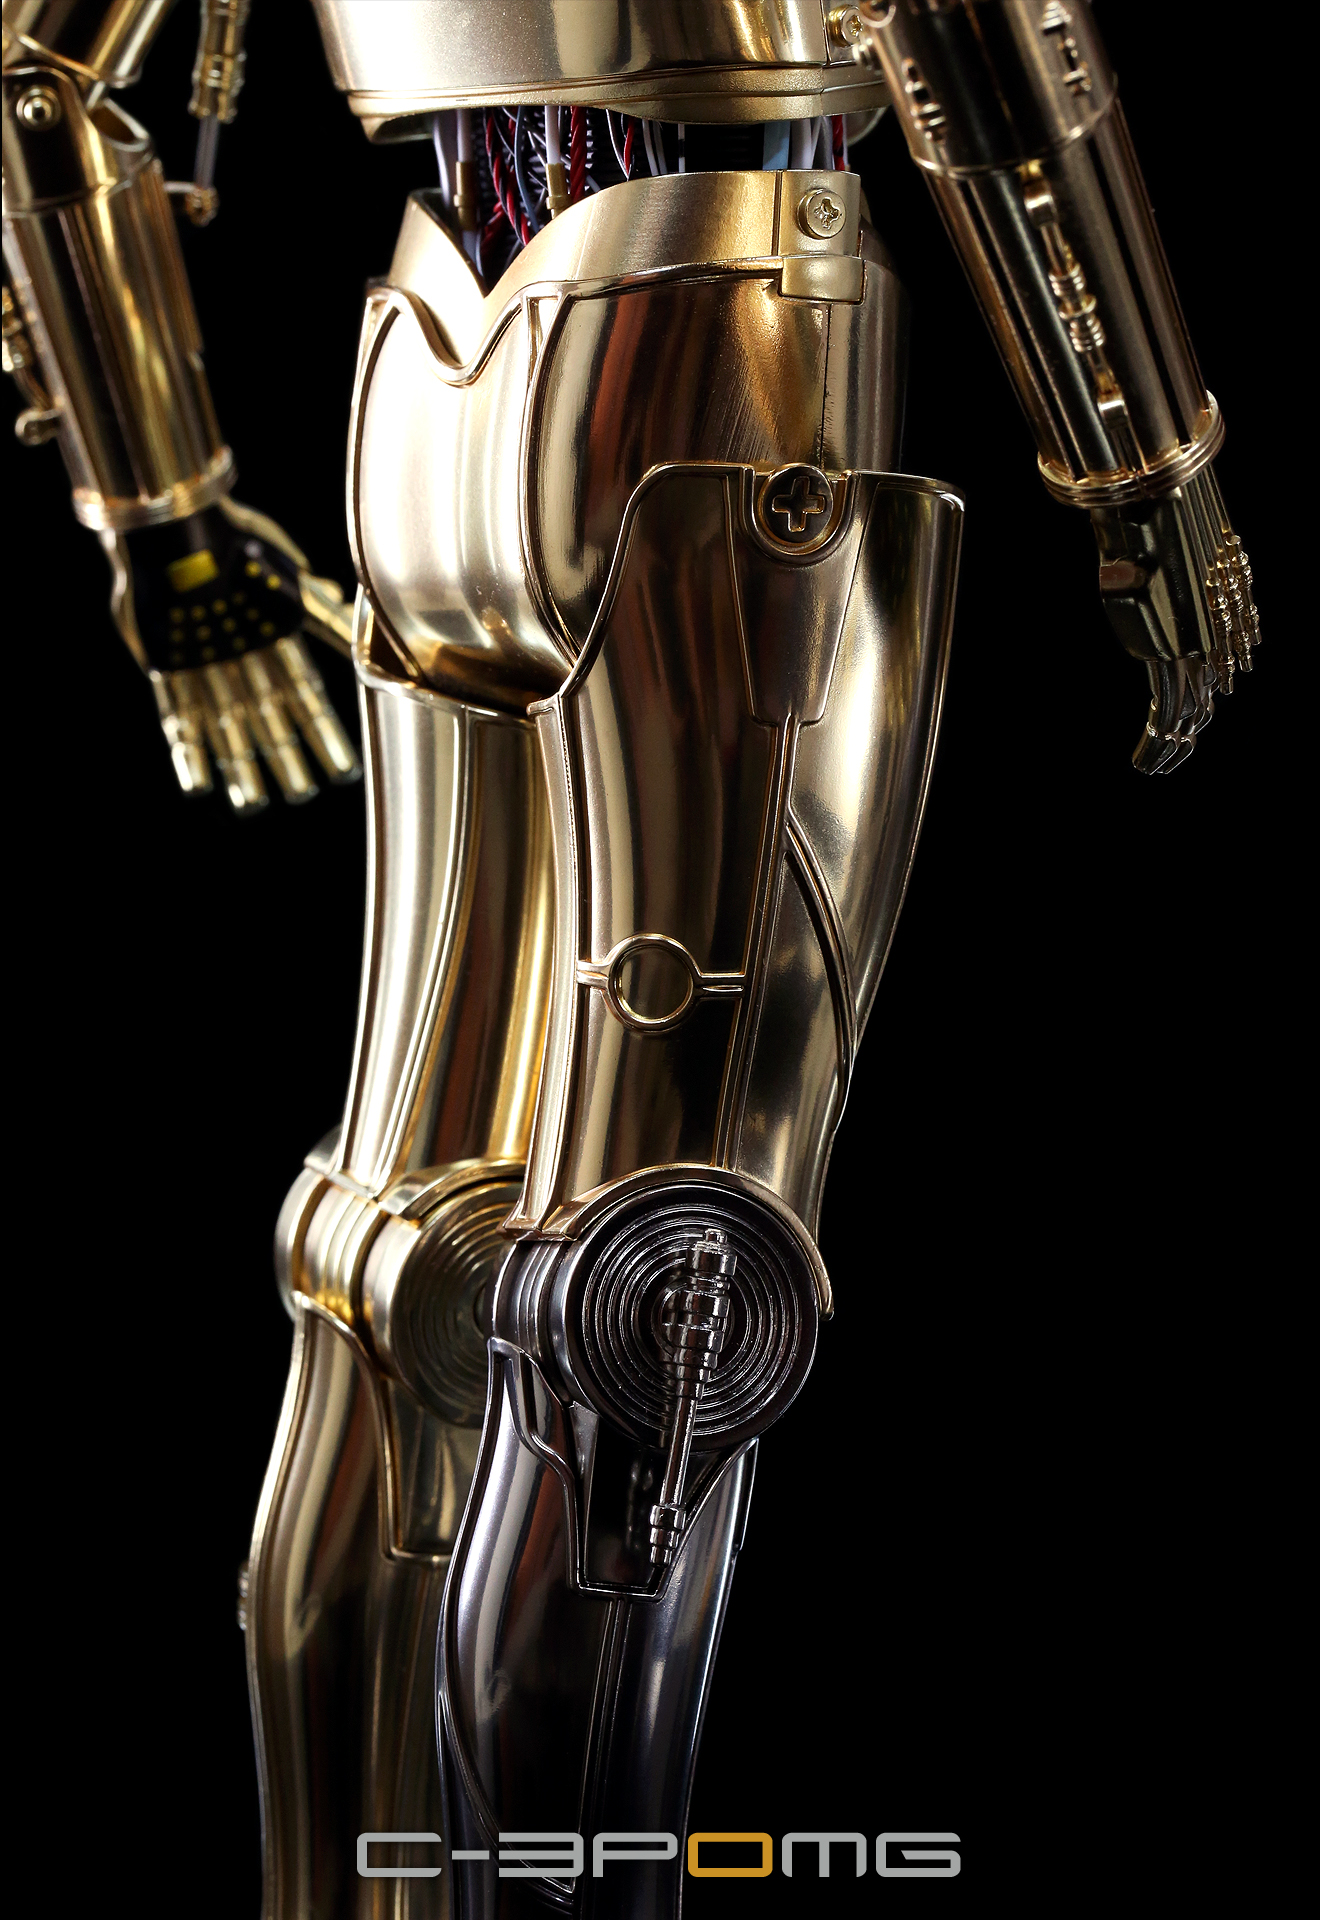 [Bandai] Star Wars: C-3PO - Perfect Model 1/6 scale - LANÇADO!!! - Página 2 C-3PO1134_zpsd0d0e515